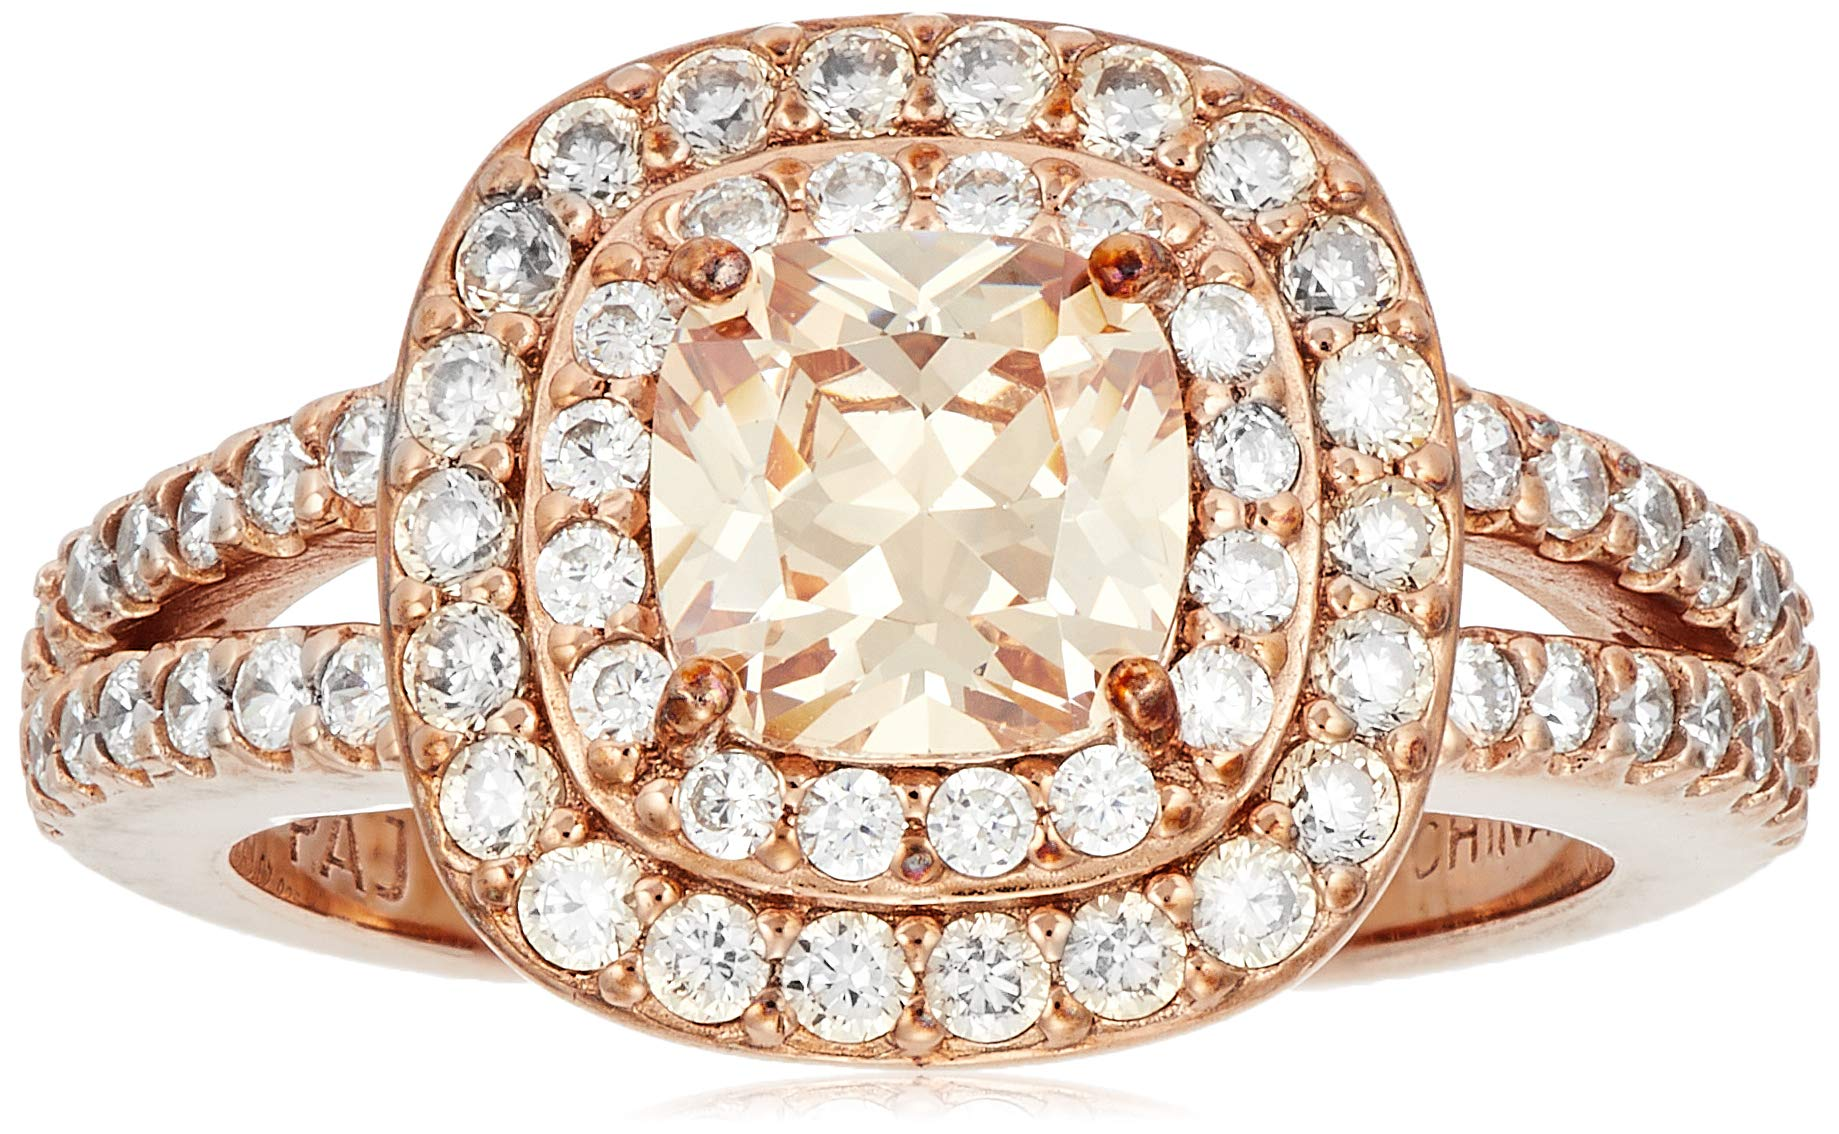 14k Rose Gold Plated Sterling Silver Champagne Cubic Zirconia Cushion Cut 6mm Double Halo Ring, Size 7 by Amazon Collection